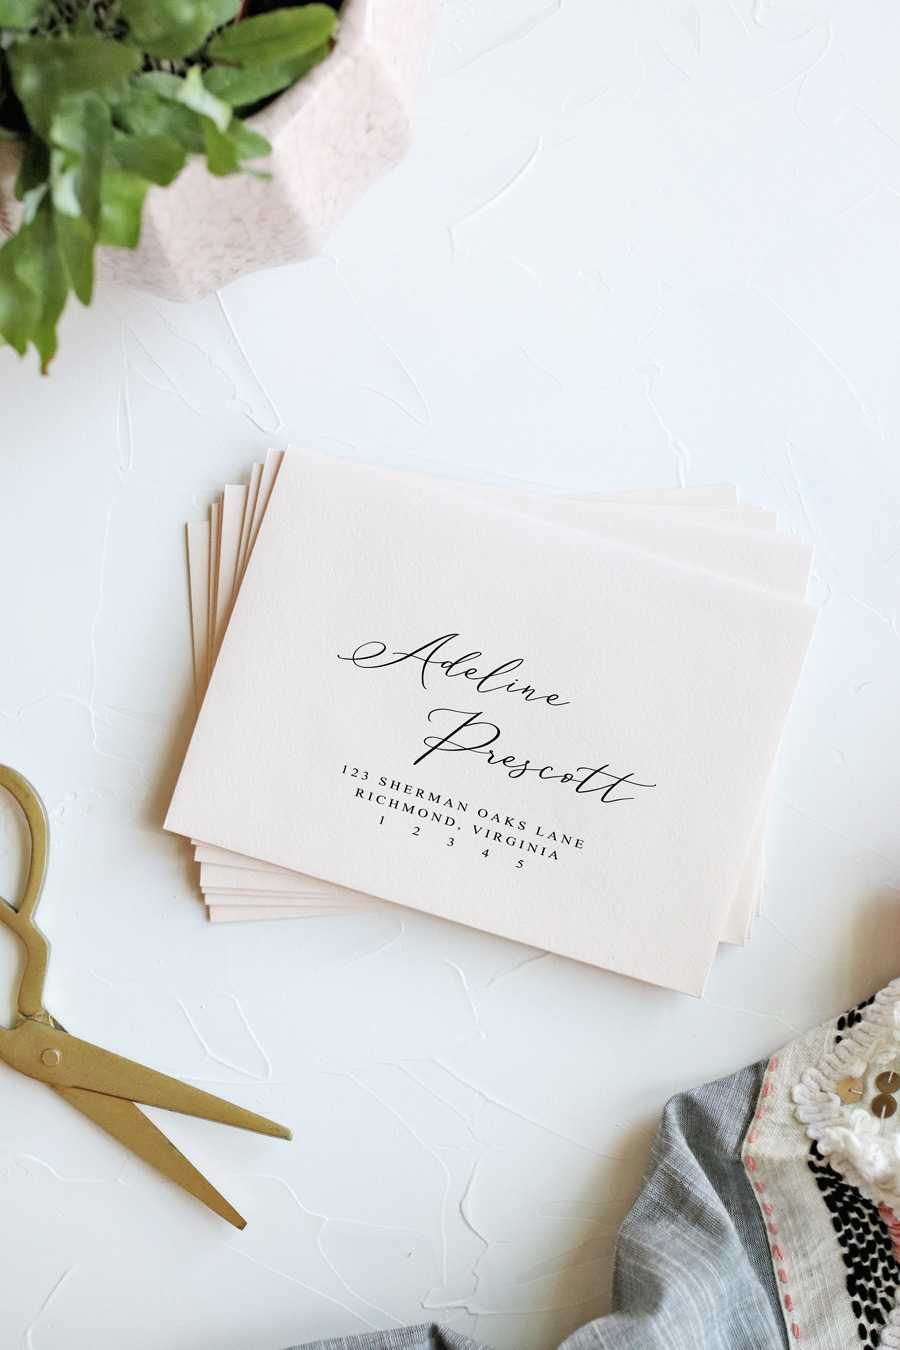 How To Print Envelopes The Easy Way | Pipkin Paper Company Regarding Paper Source Templates Place Cards